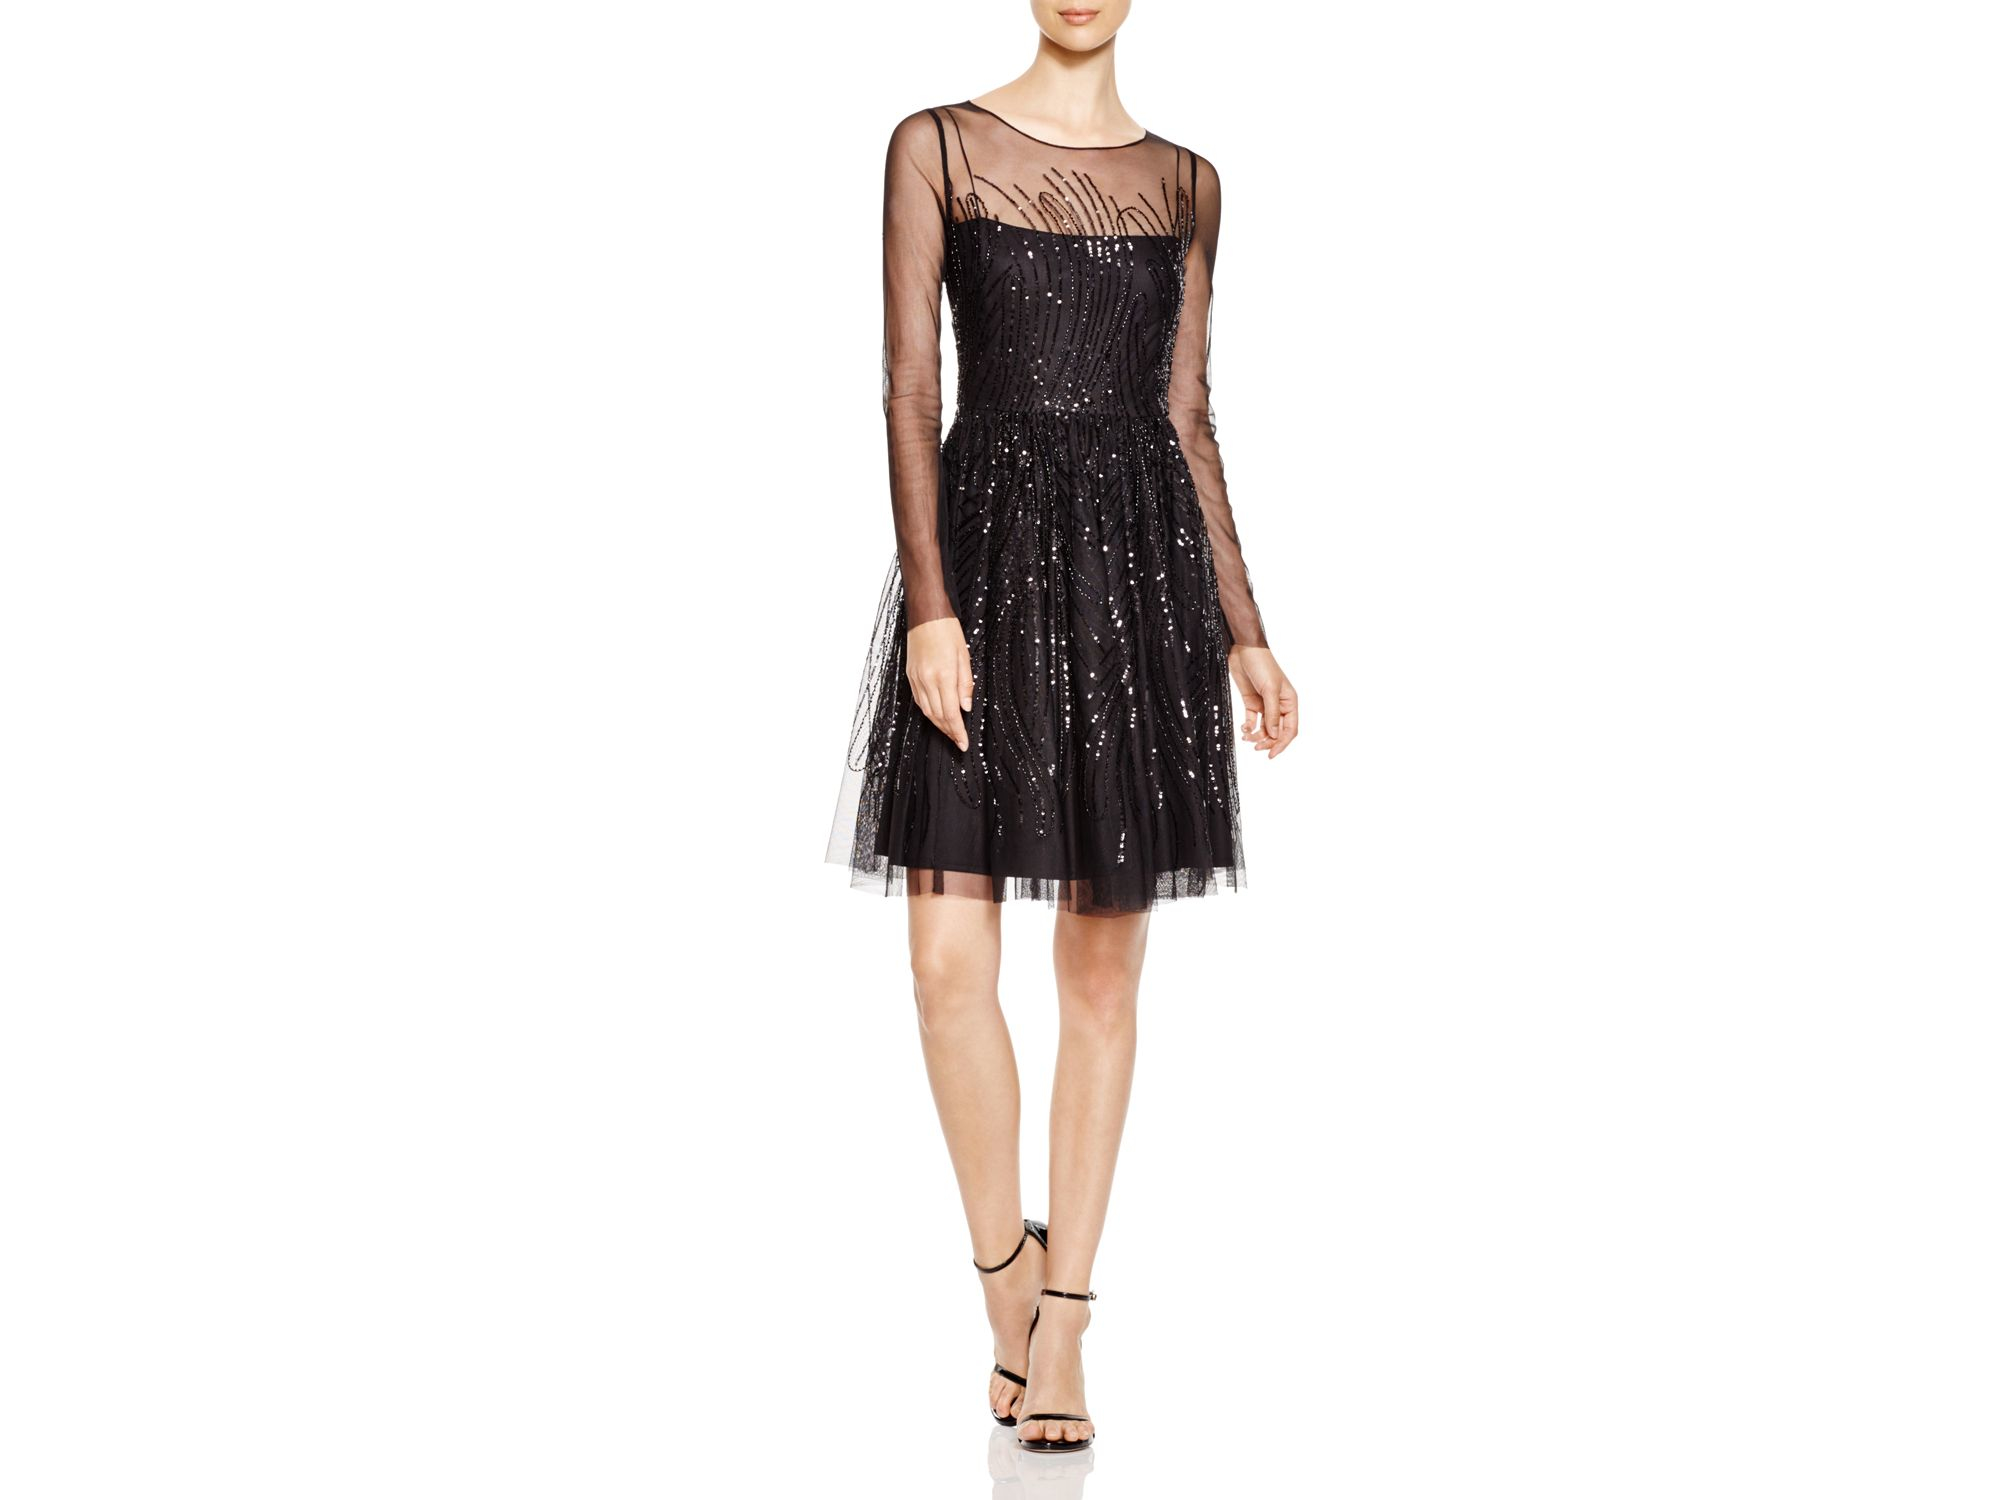 339c3bf9 Vera Wang Sequin Fit And Flare Dress in Black - Lyst